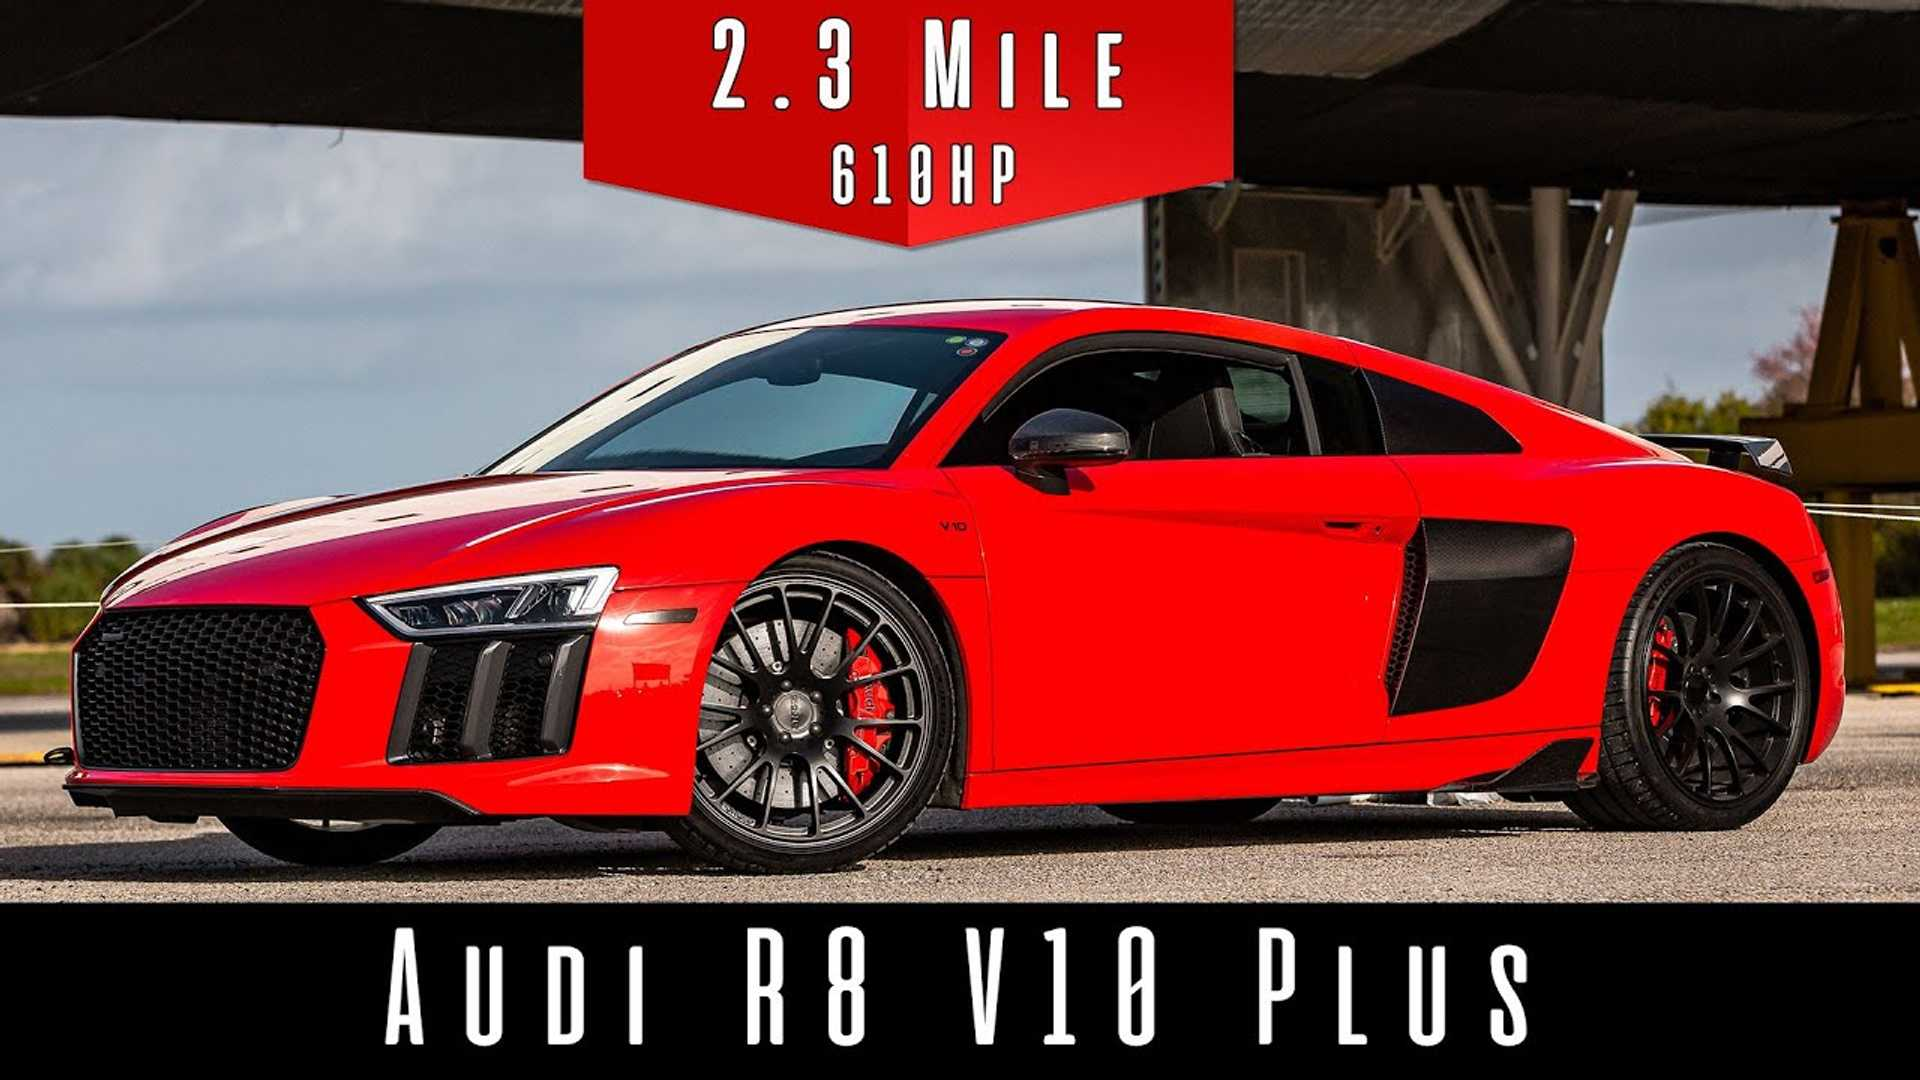 Audi R8 V10 Plus – 202 MPH Top Speed Run